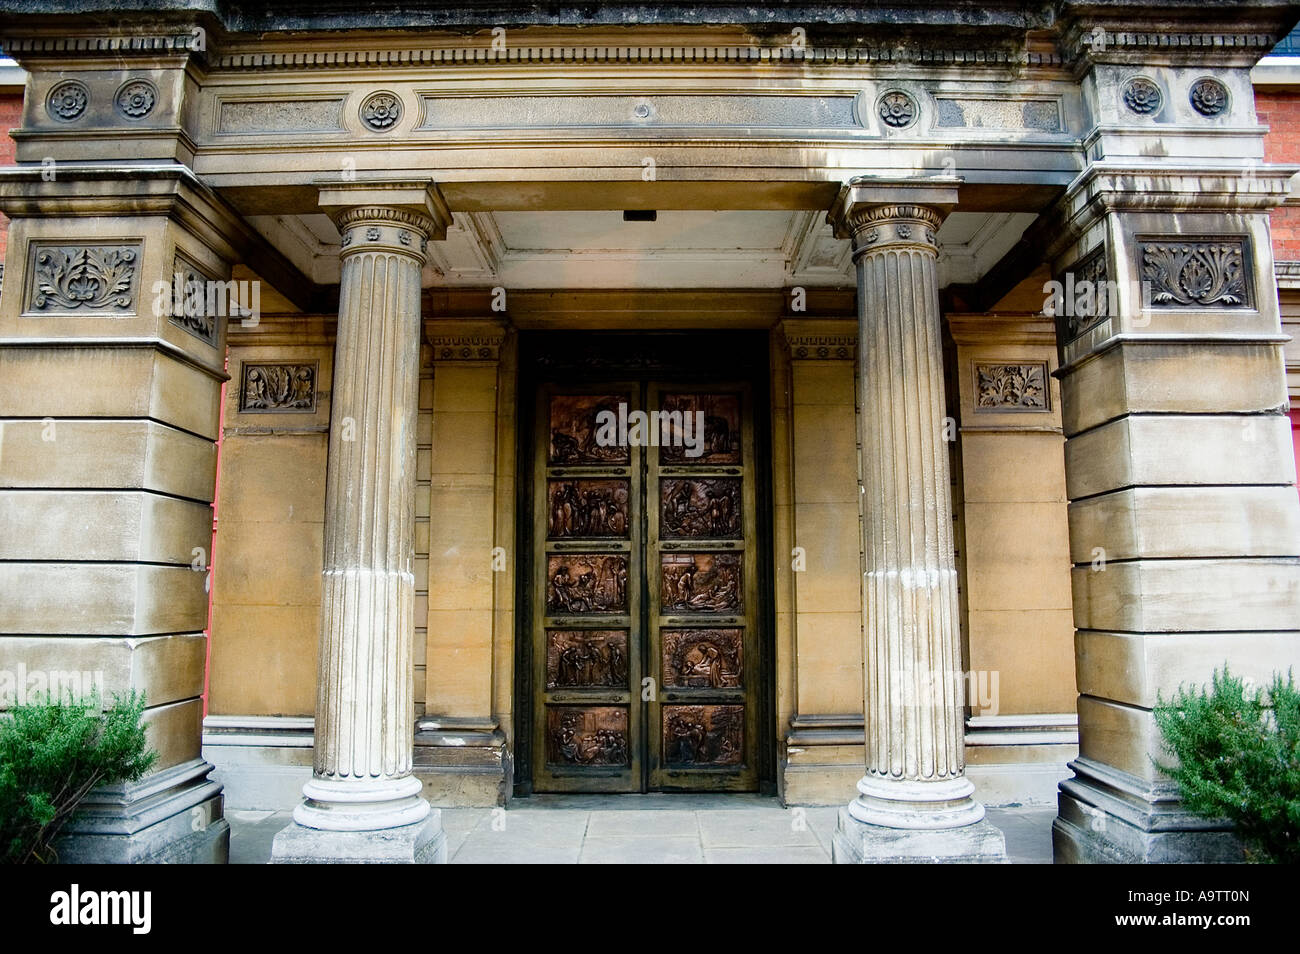 john bunyan church front door author of pilgrim progress - Stock Image